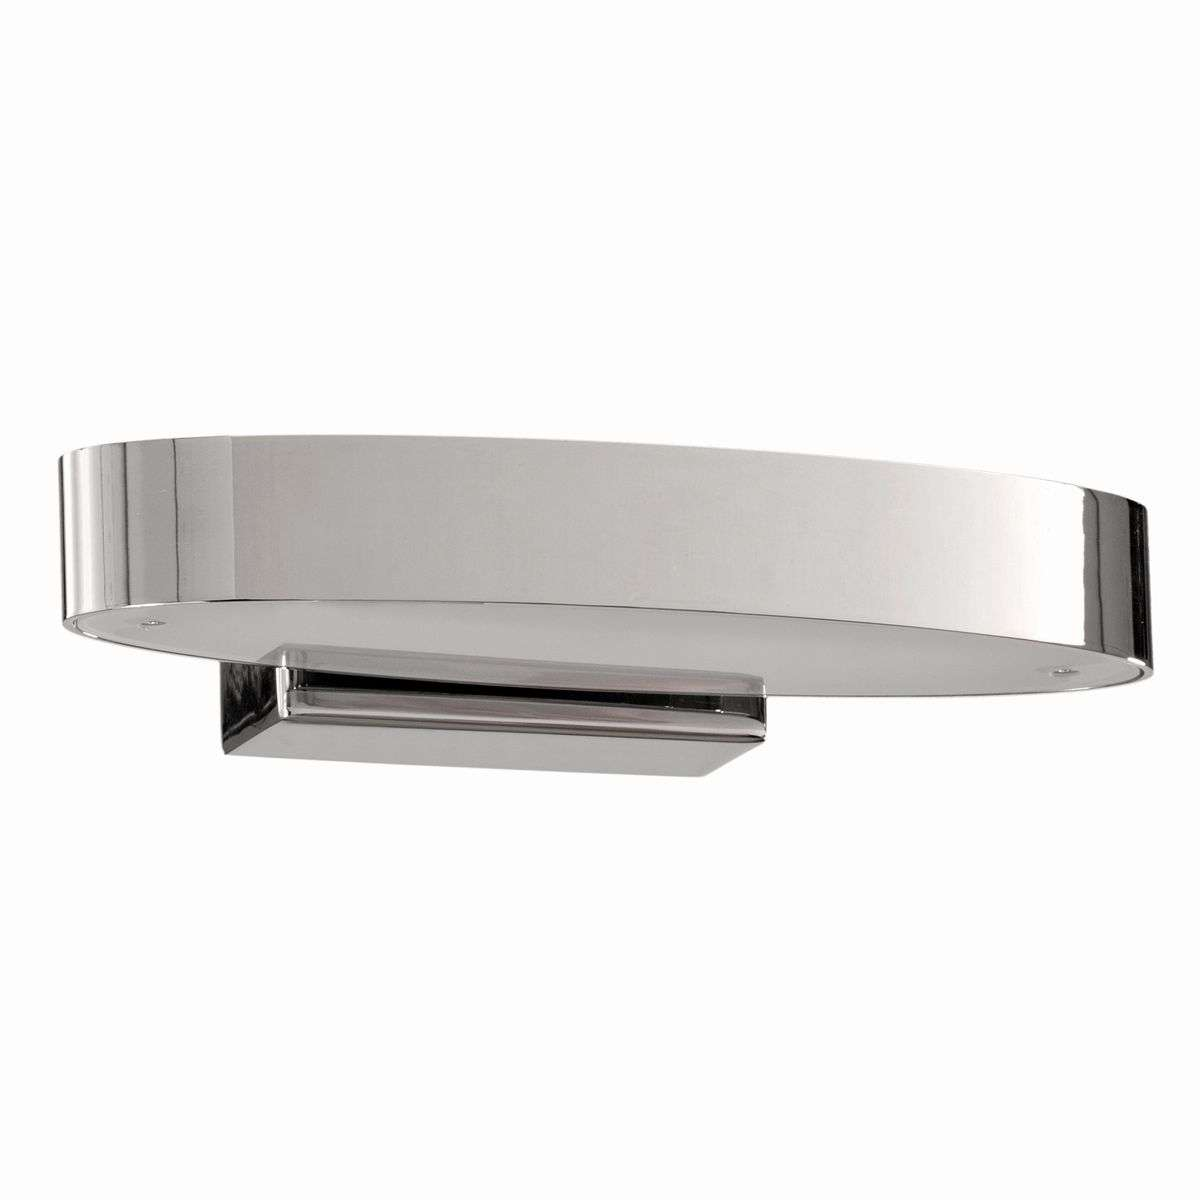 Elyptic an appealing LED wall light-1050055-31